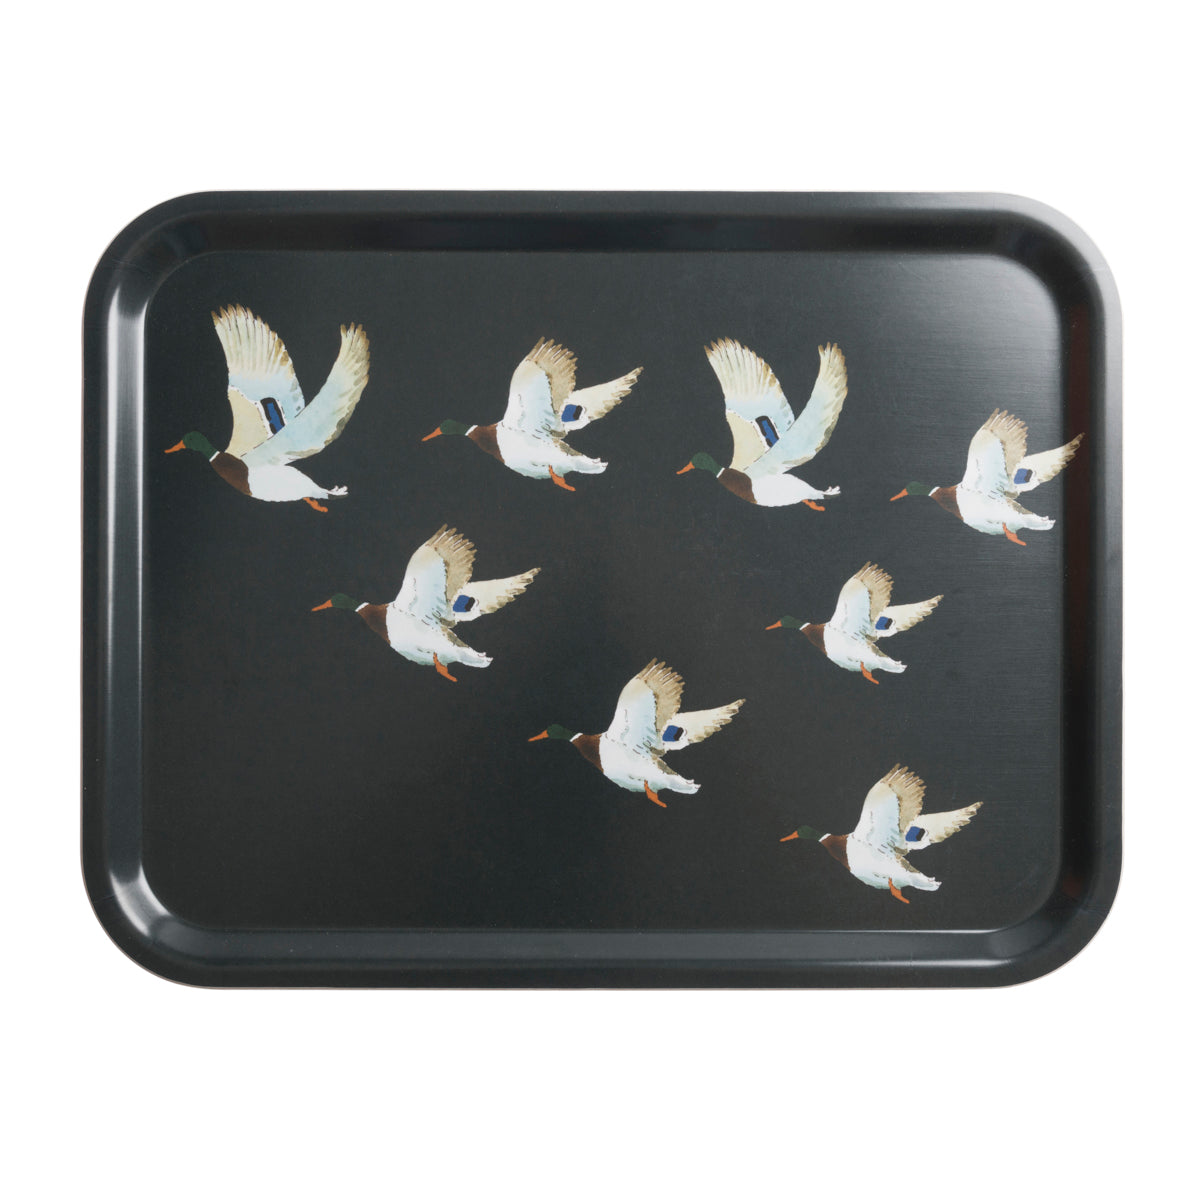 Ducks Printed Tray by Sophie Allport